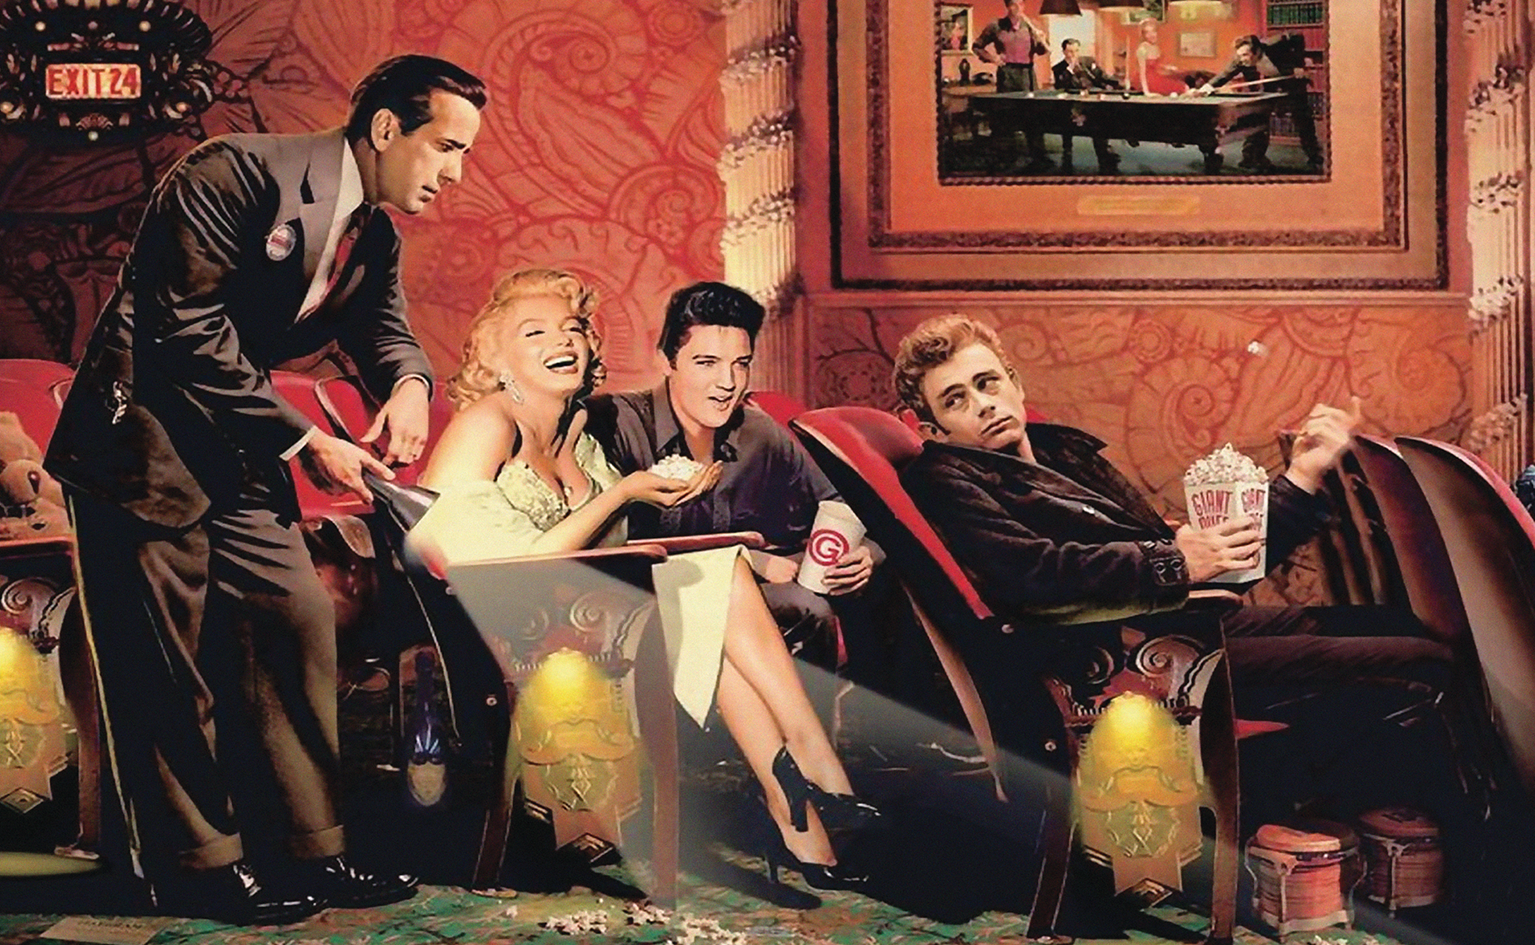 James Dean Elvis Presley Marilyn Monroe At The Movies Cinema Wall